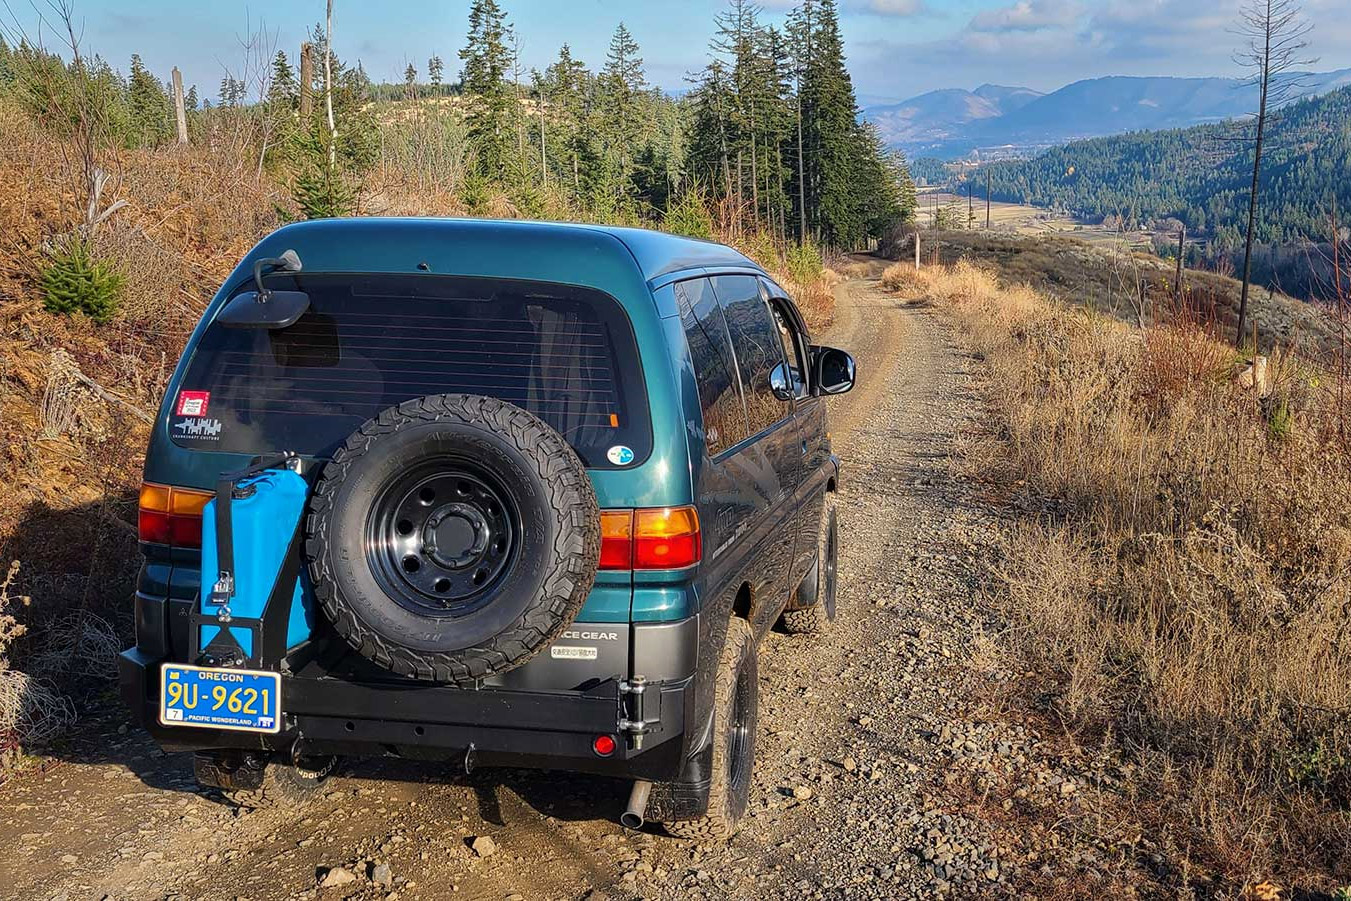 how to off-road - stay on trail